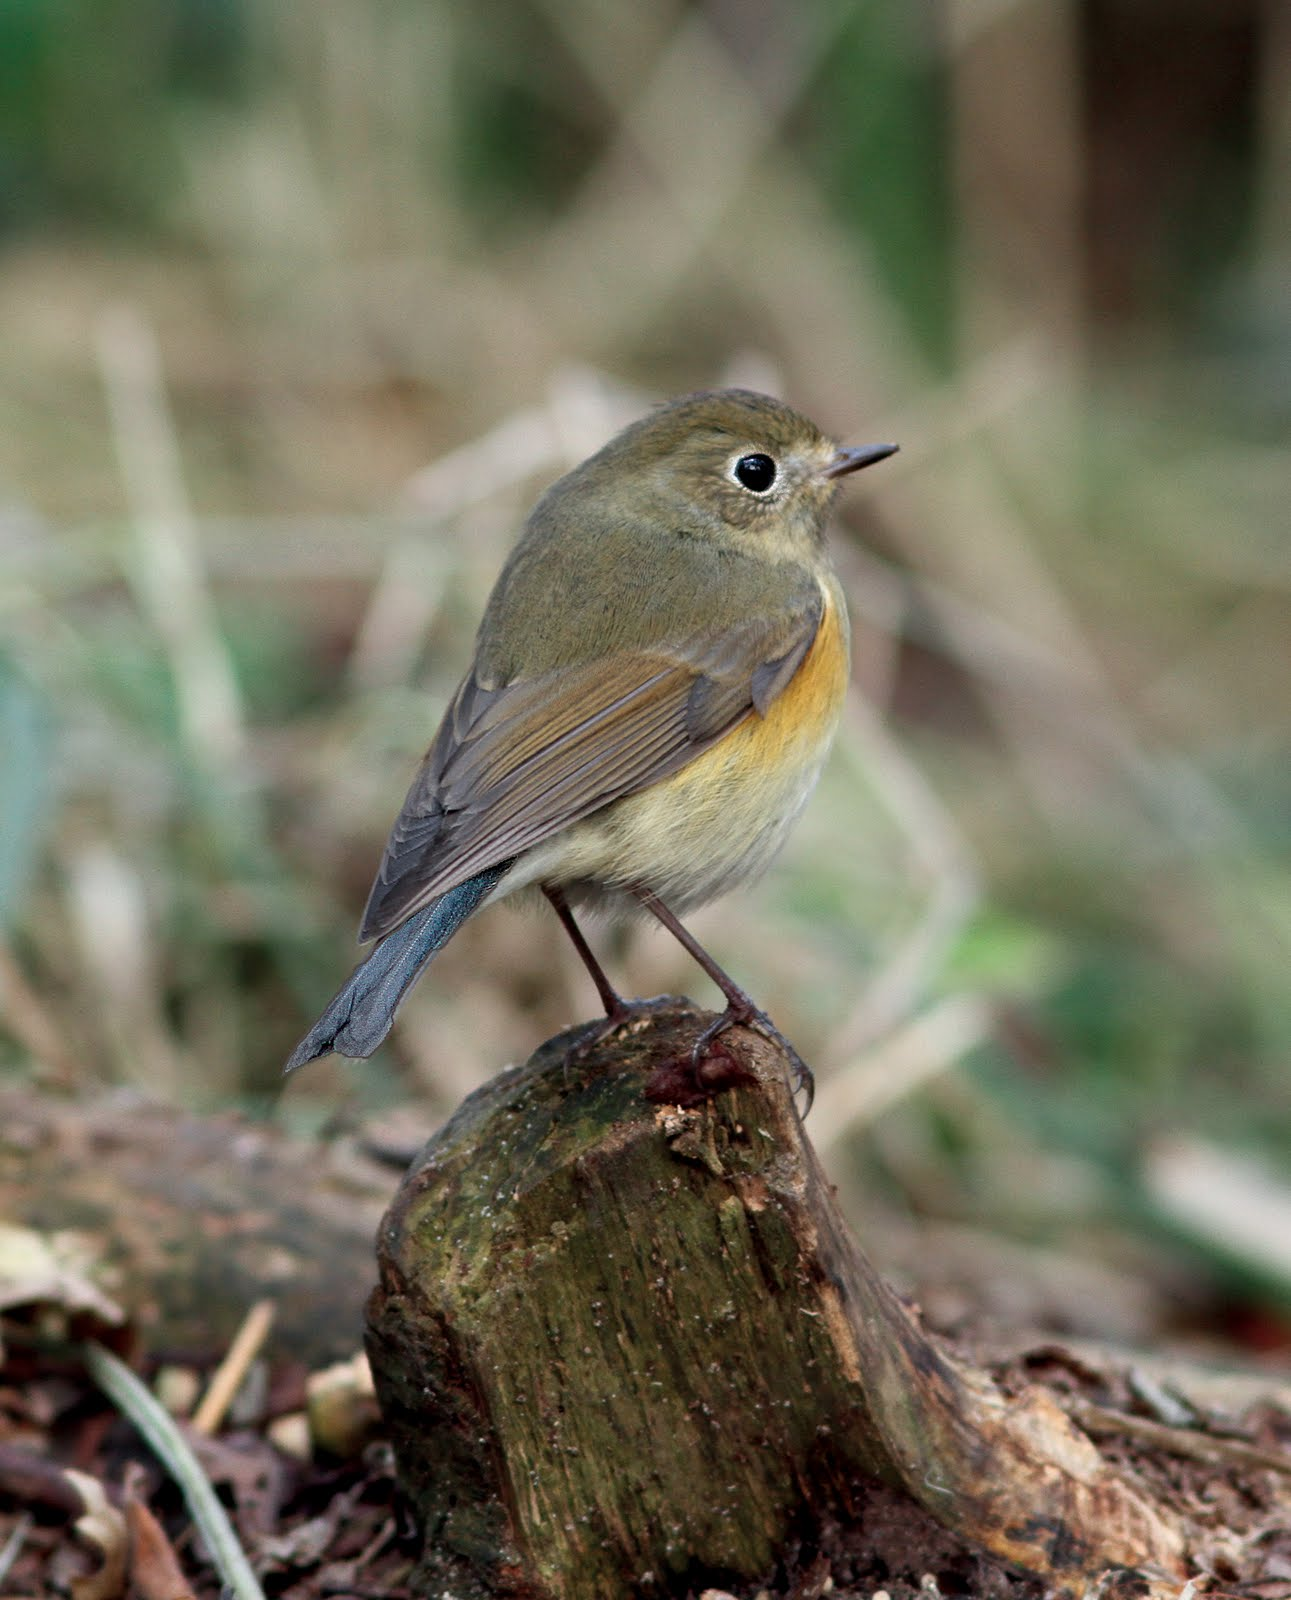 This picture of the waxham bluetail from my post